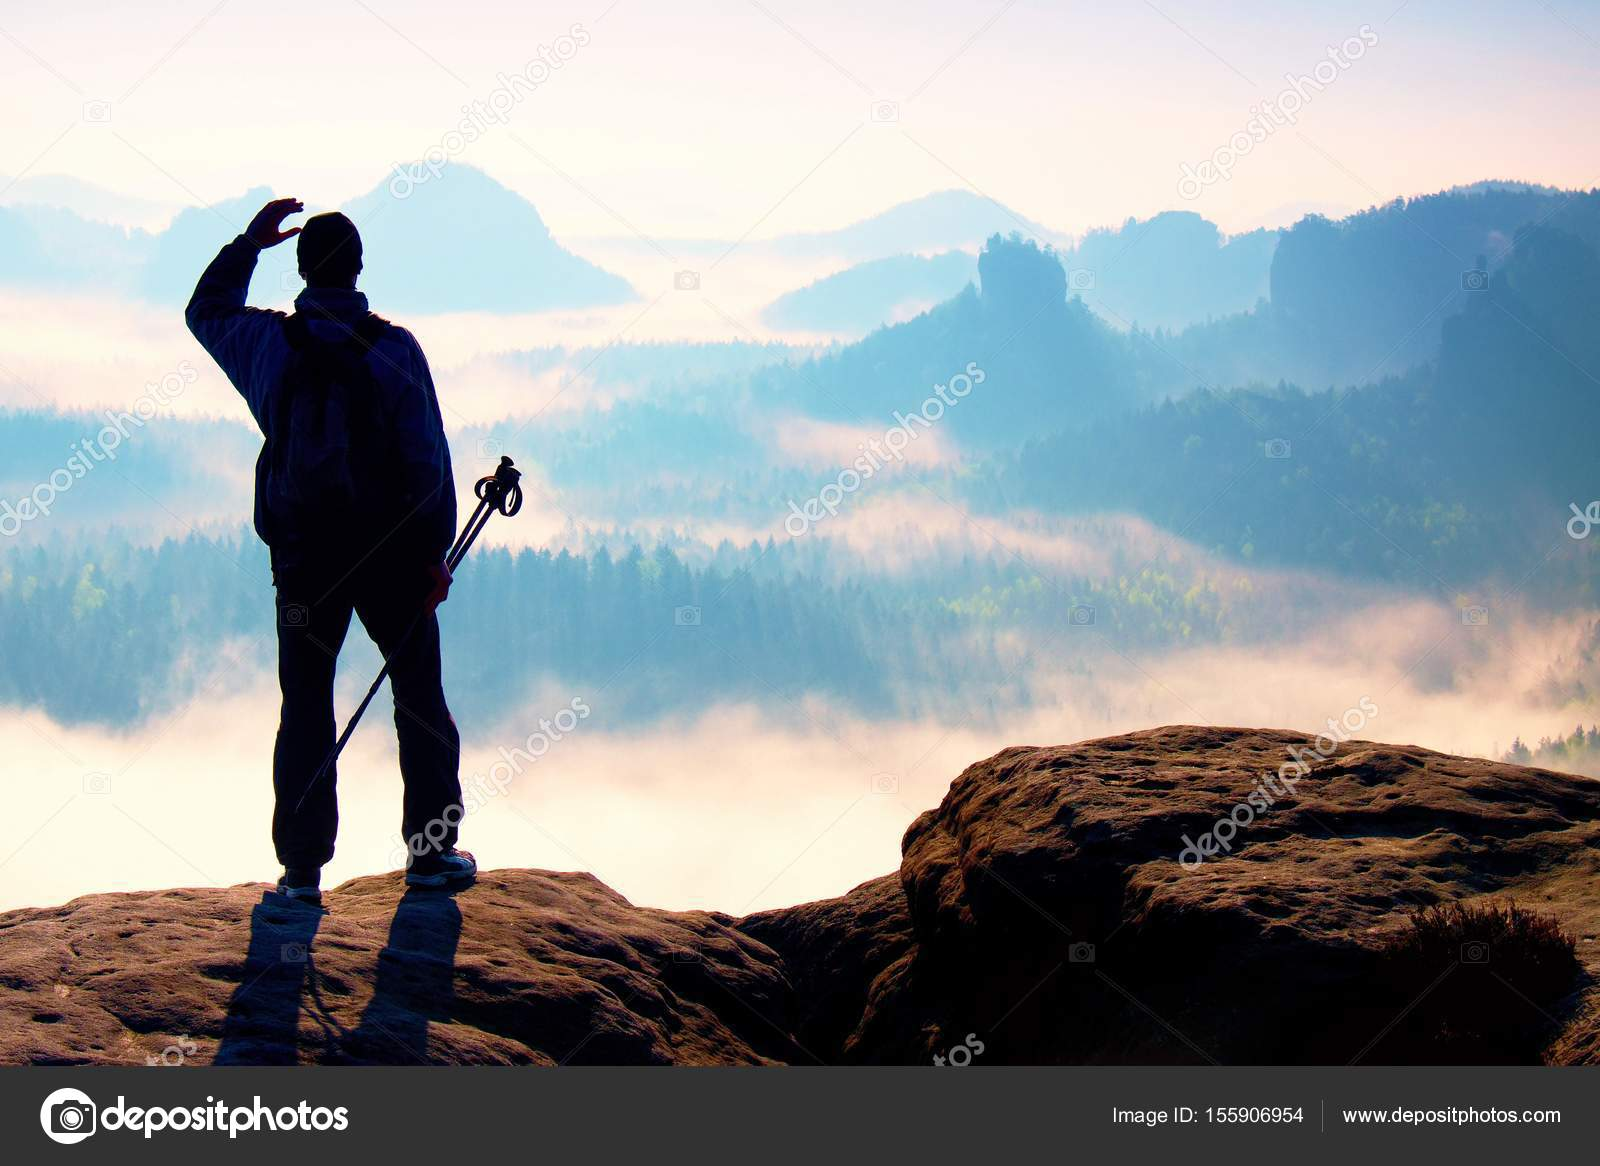 Misty day in rocky mountains  Silhouette of tourist with poles in